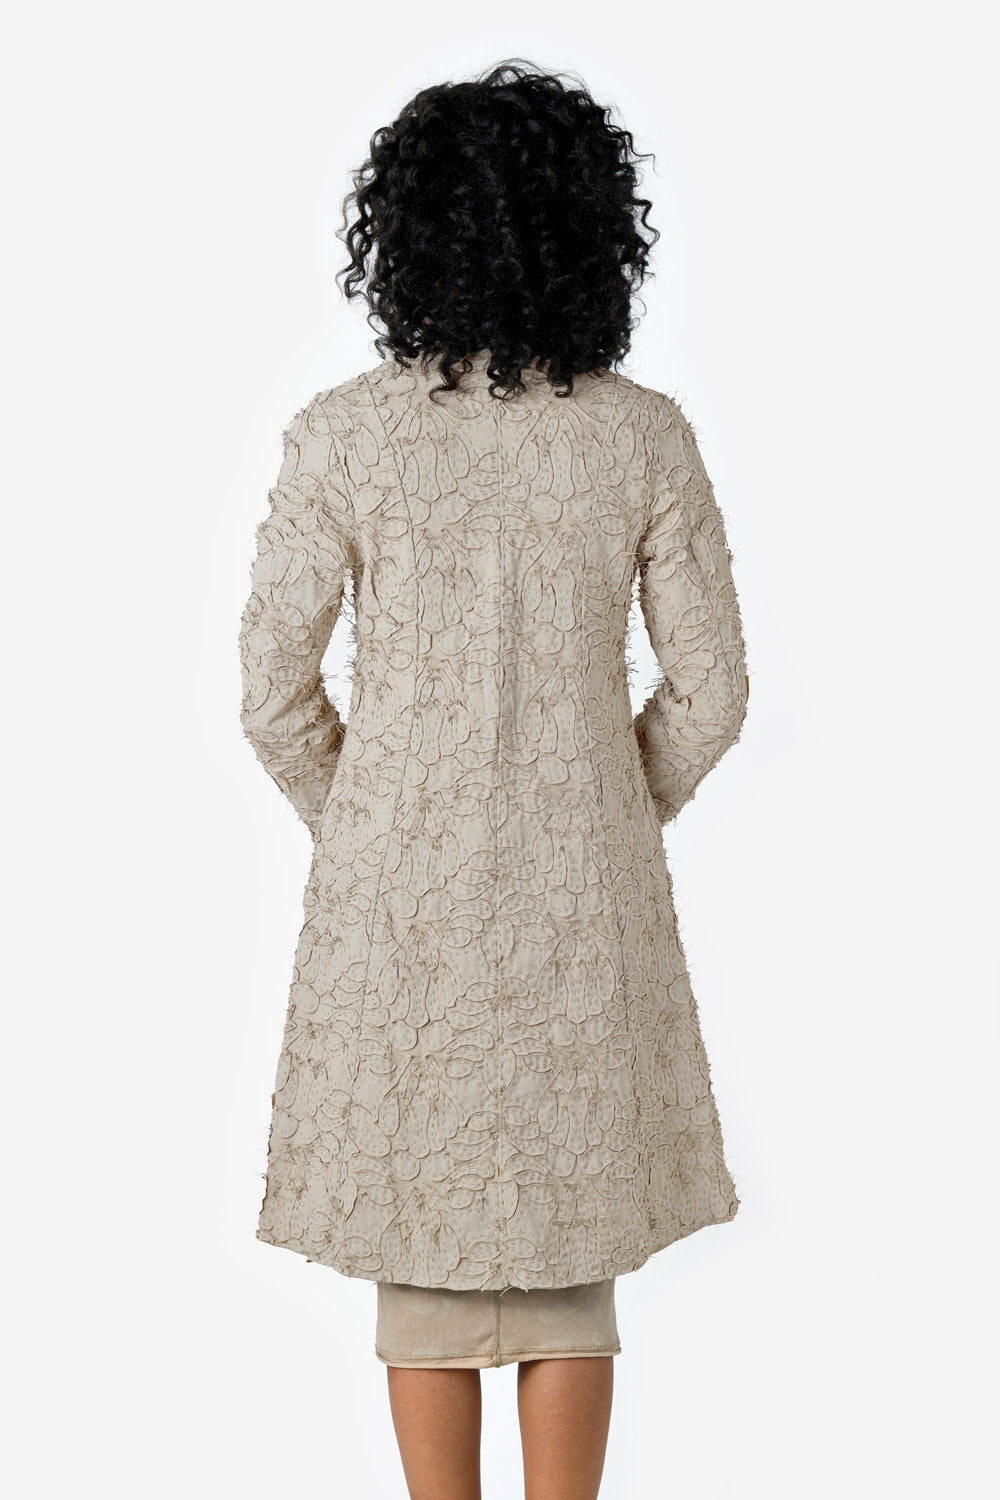 Alabama Chanin Clemence Jacket Women's Hand Sewn Lightweight Coat with Appliqué in Tan